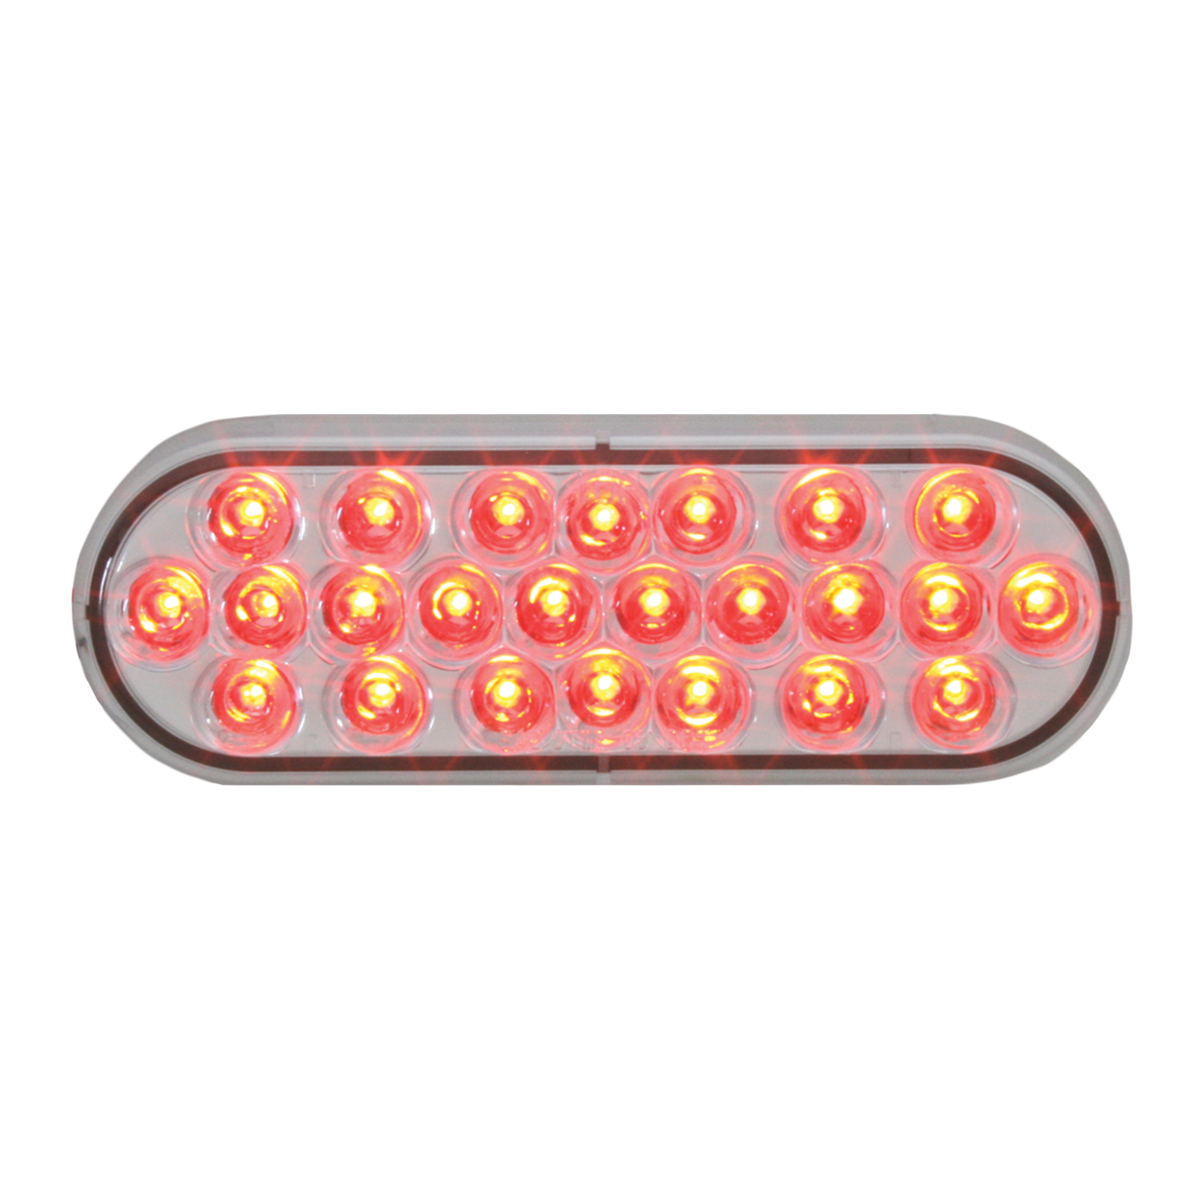 #78234 - Oval Sealed Pearl LED Flat Red/Clear Lights